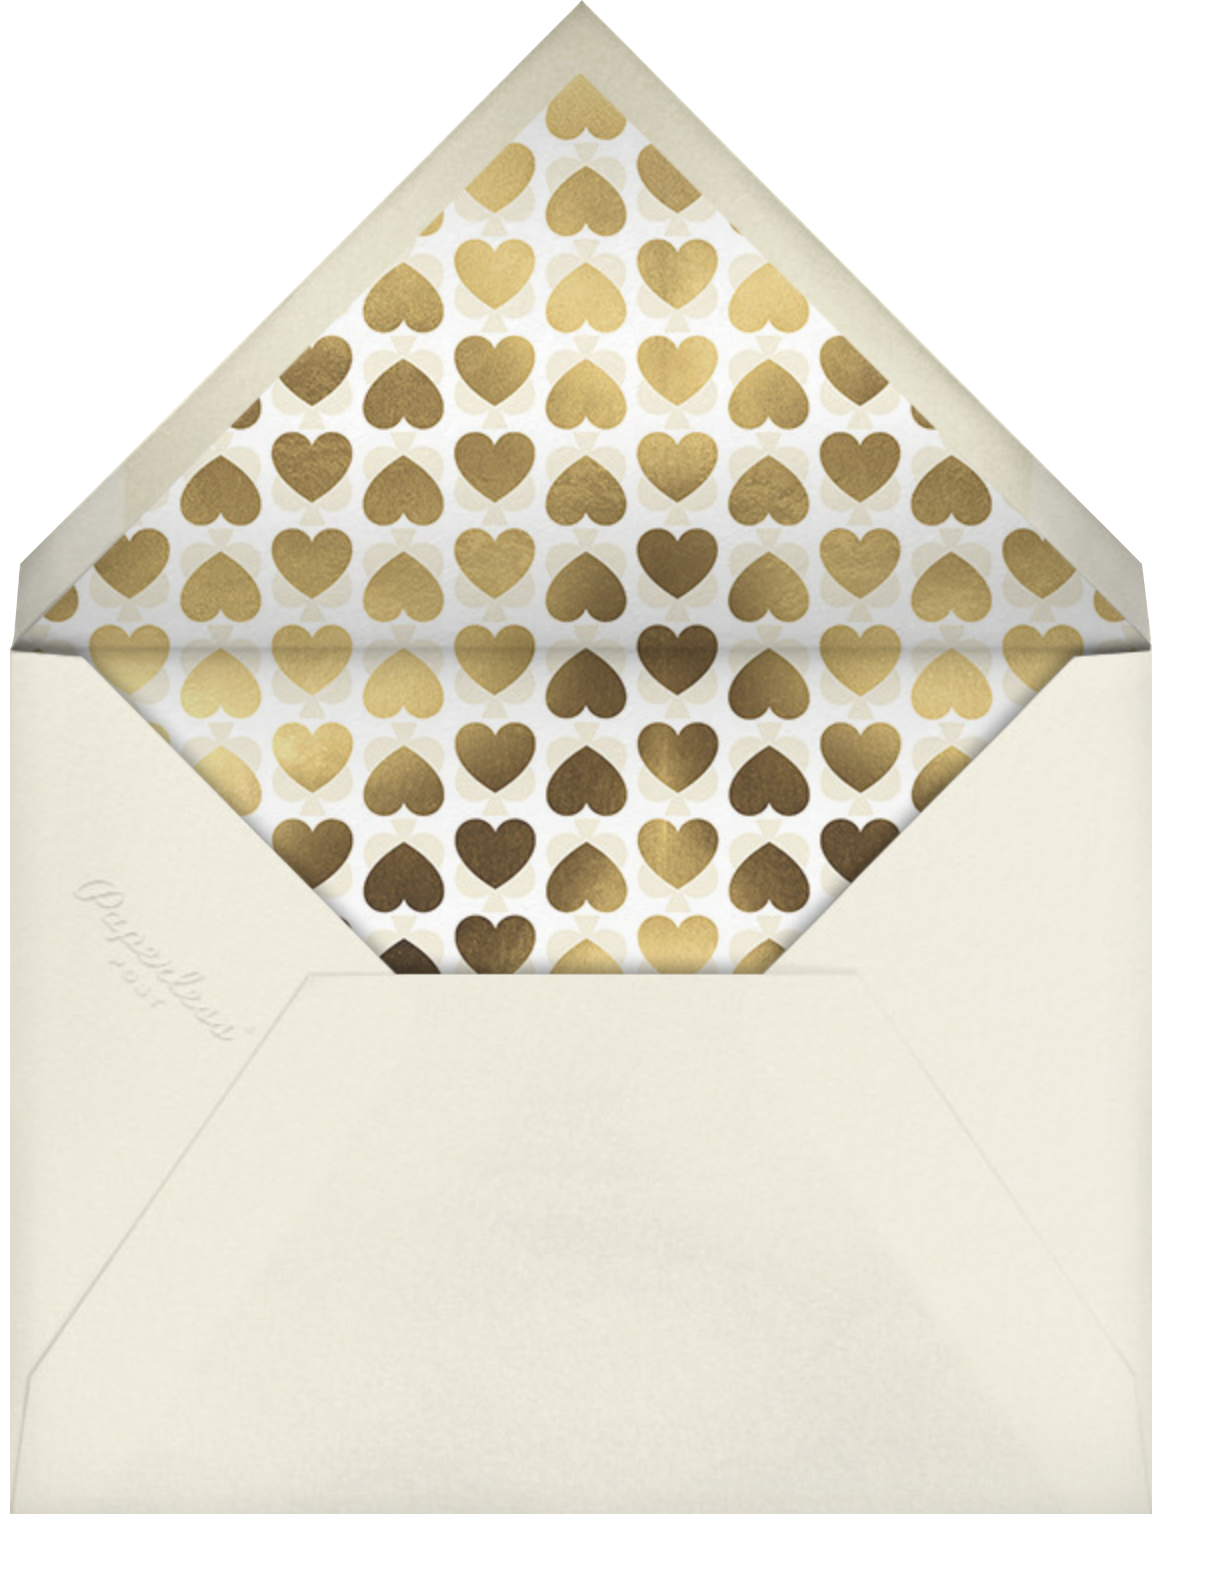 Fallen In Love - Pavlova - kate spade new york - Engagement party - envelope back